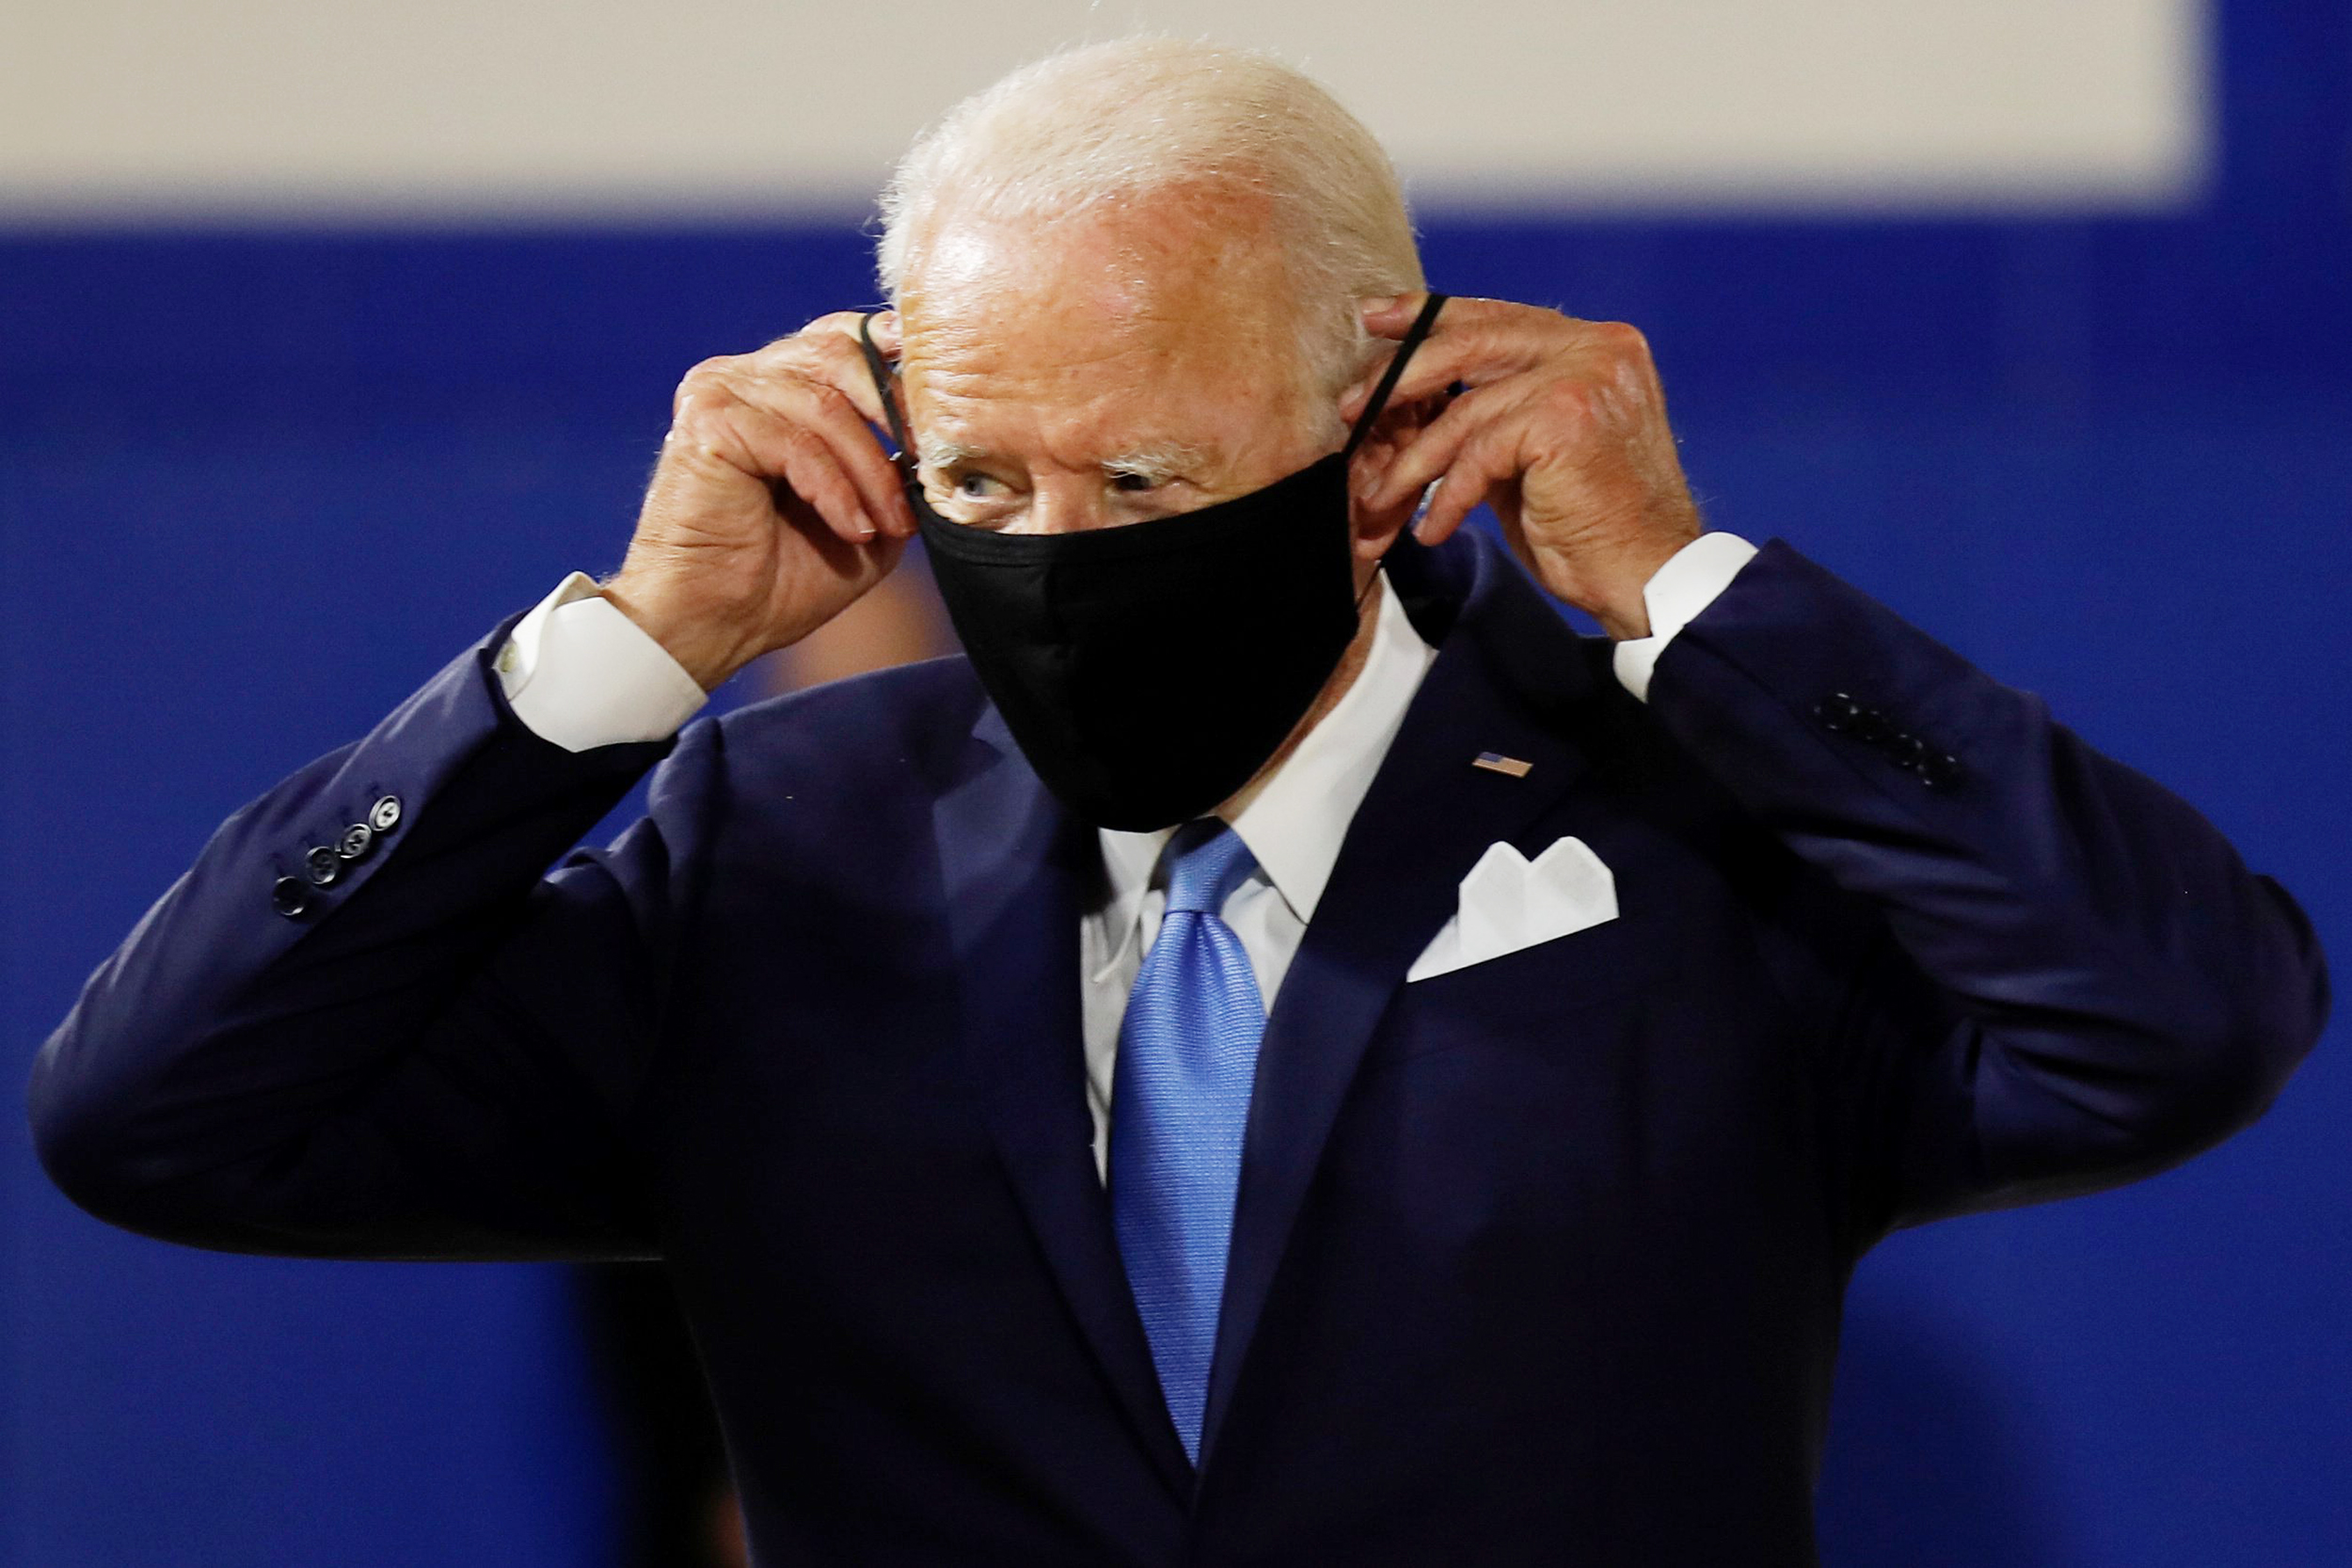 Biden reiterates call for nationwide mask mandates at second event with Harris